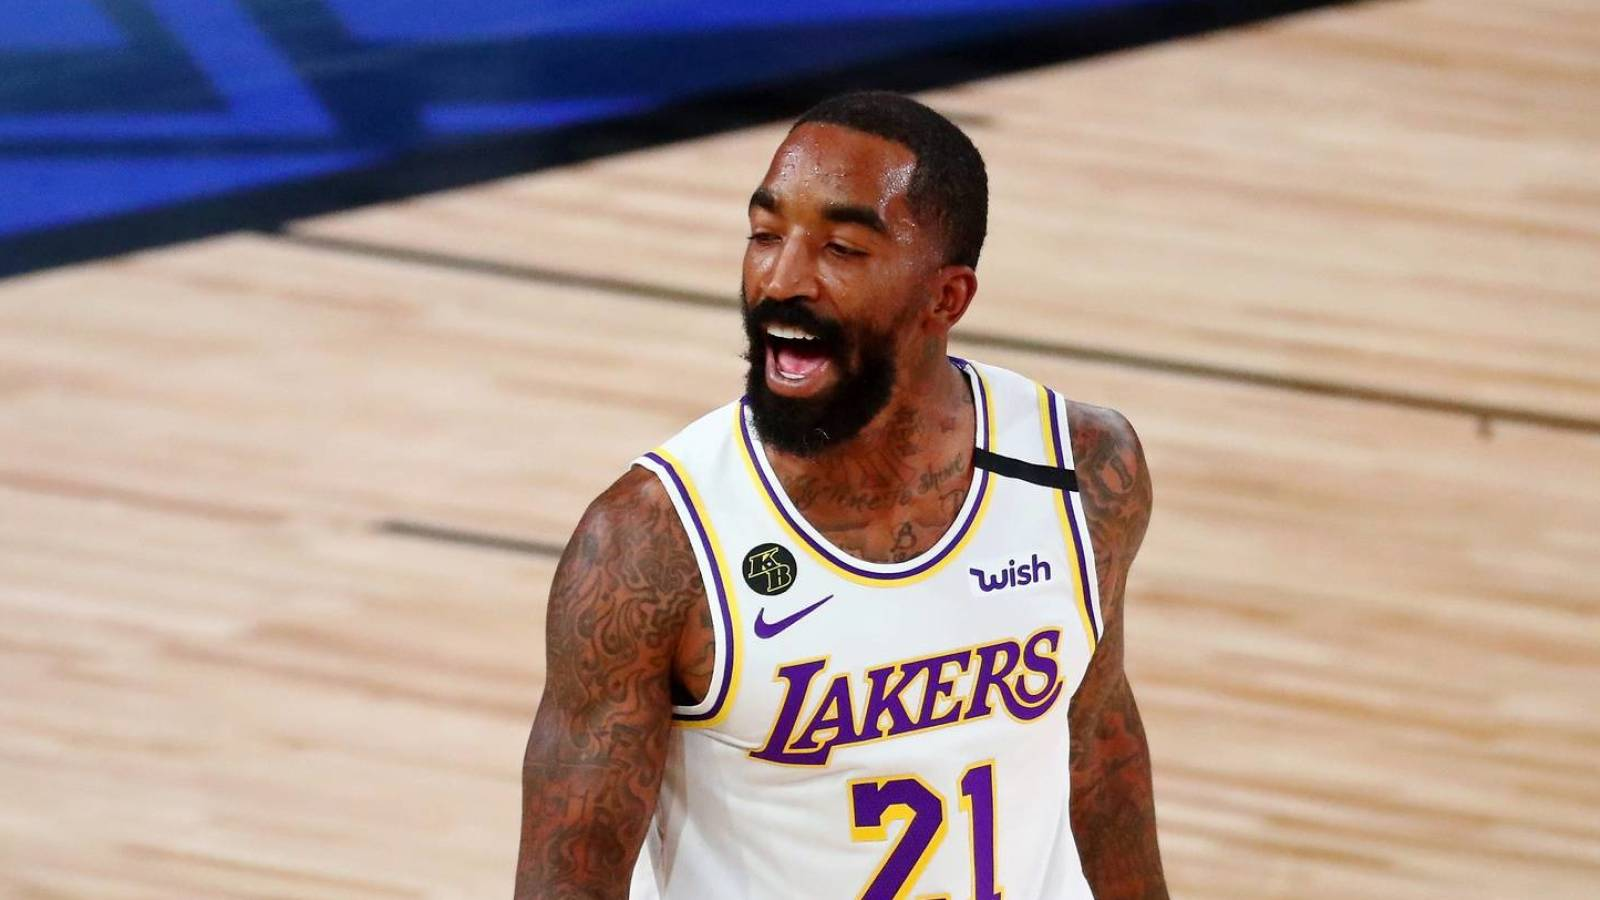 JR Smith wasted no time going shirtless when Lakers won ...